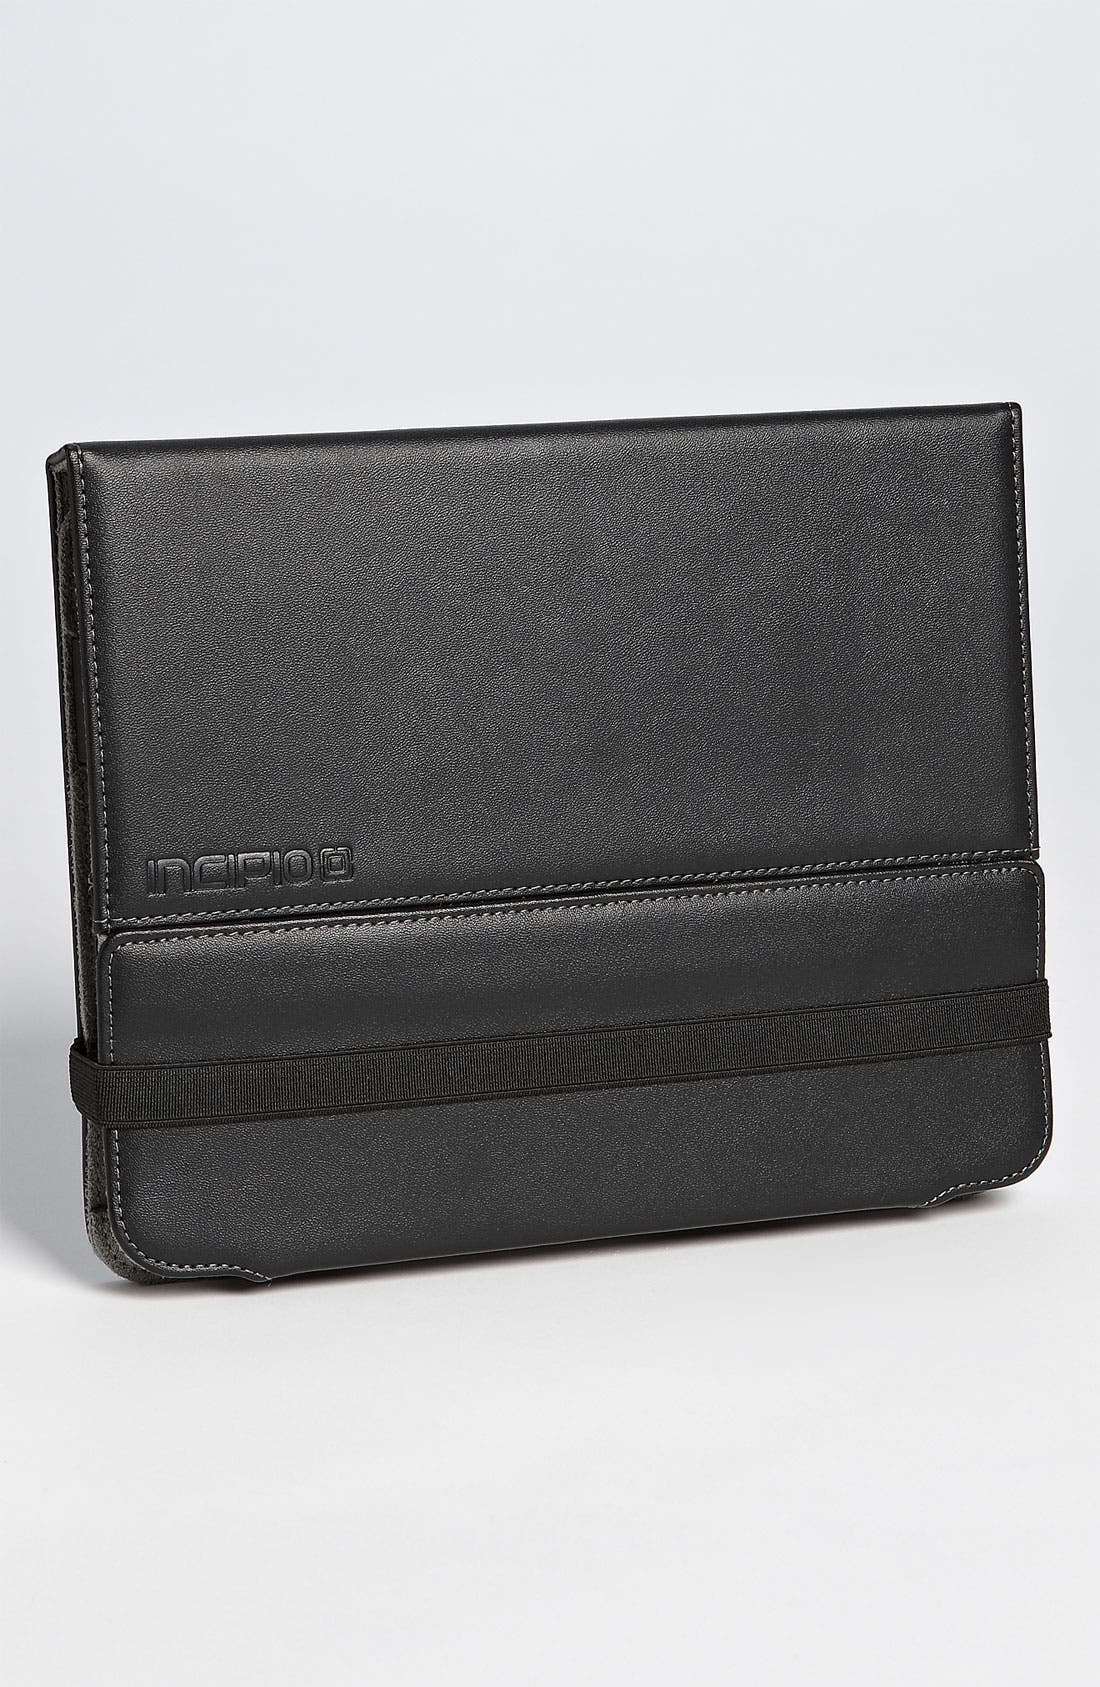 Main Image - Incipio 'Executive Premium Kickstand' iPad 2 Case